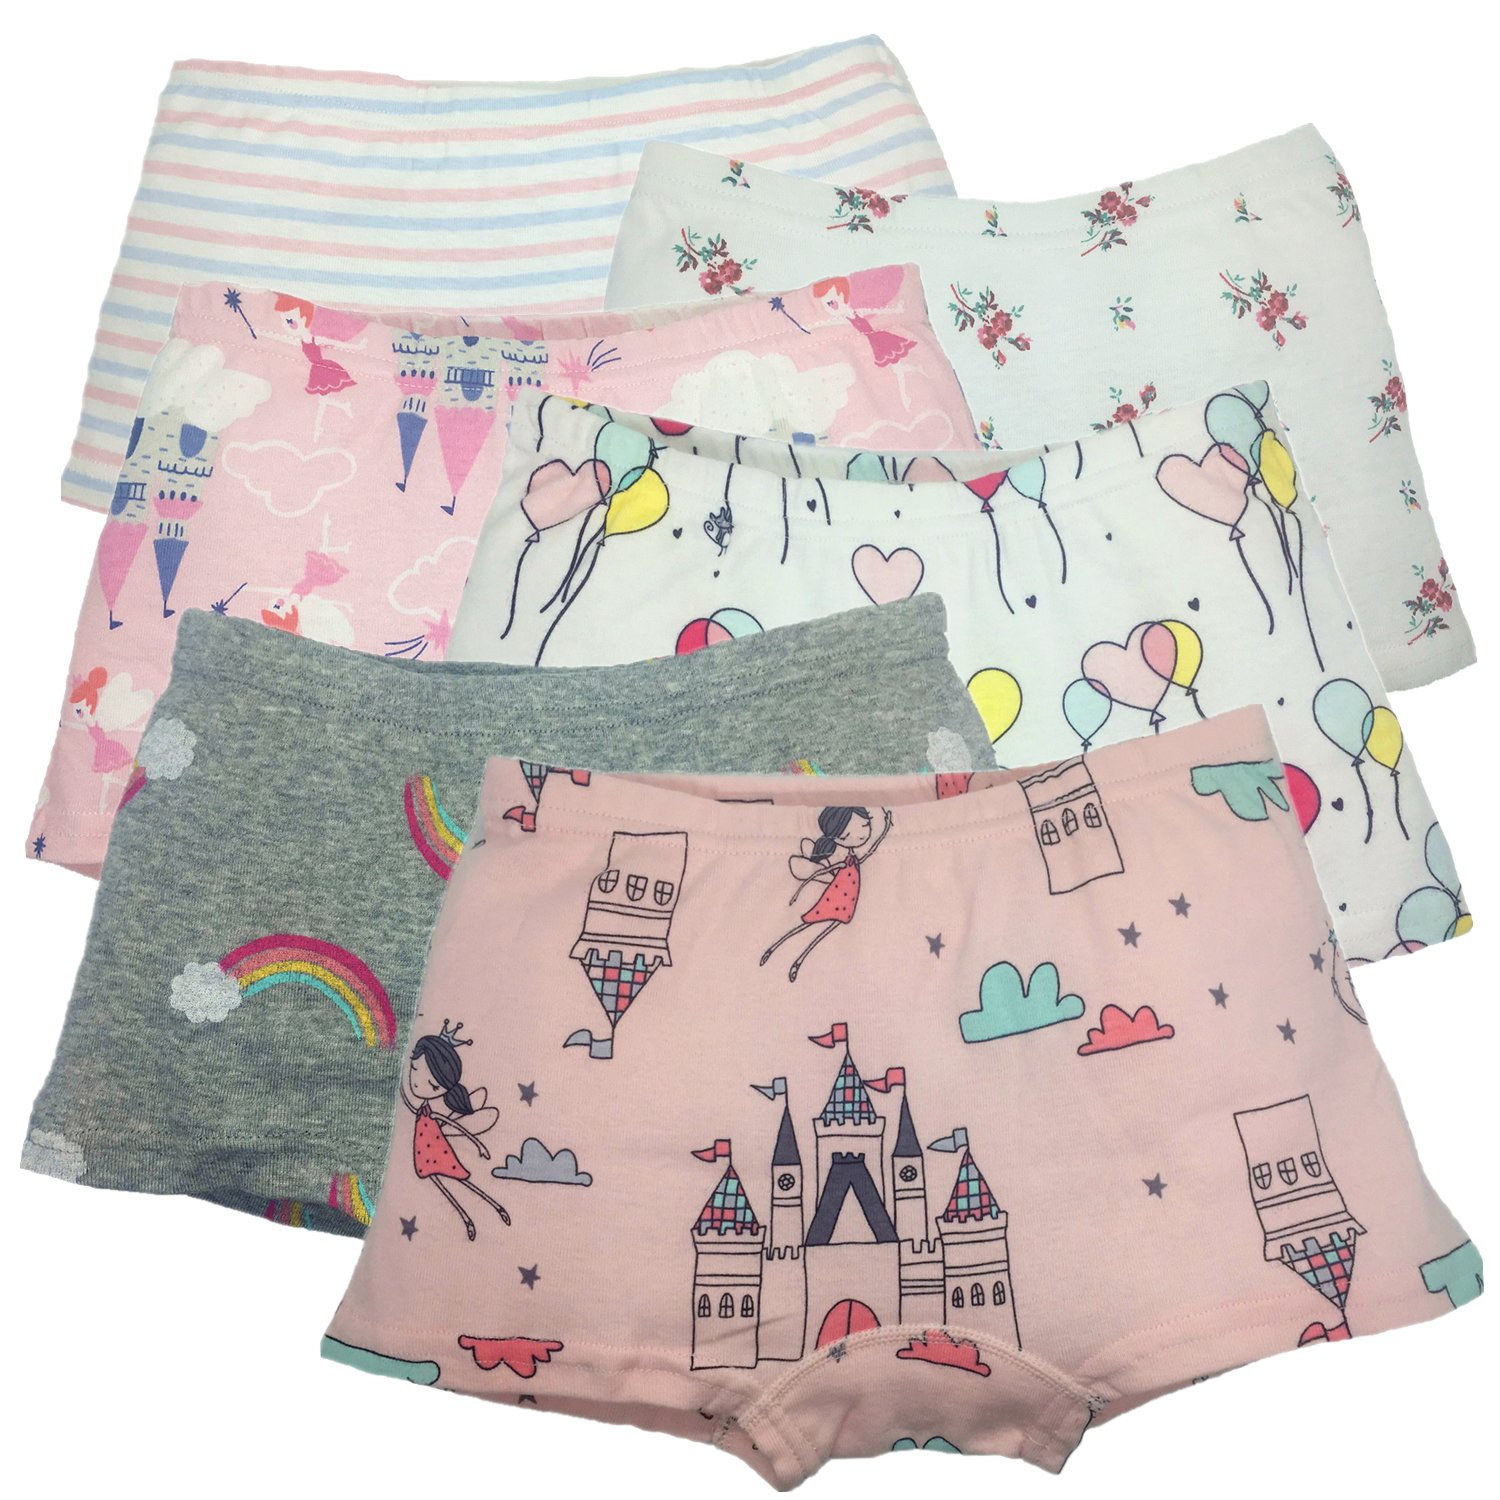 Little Girls Boyshort Hipster Panties Kids Underwear 5 Pack